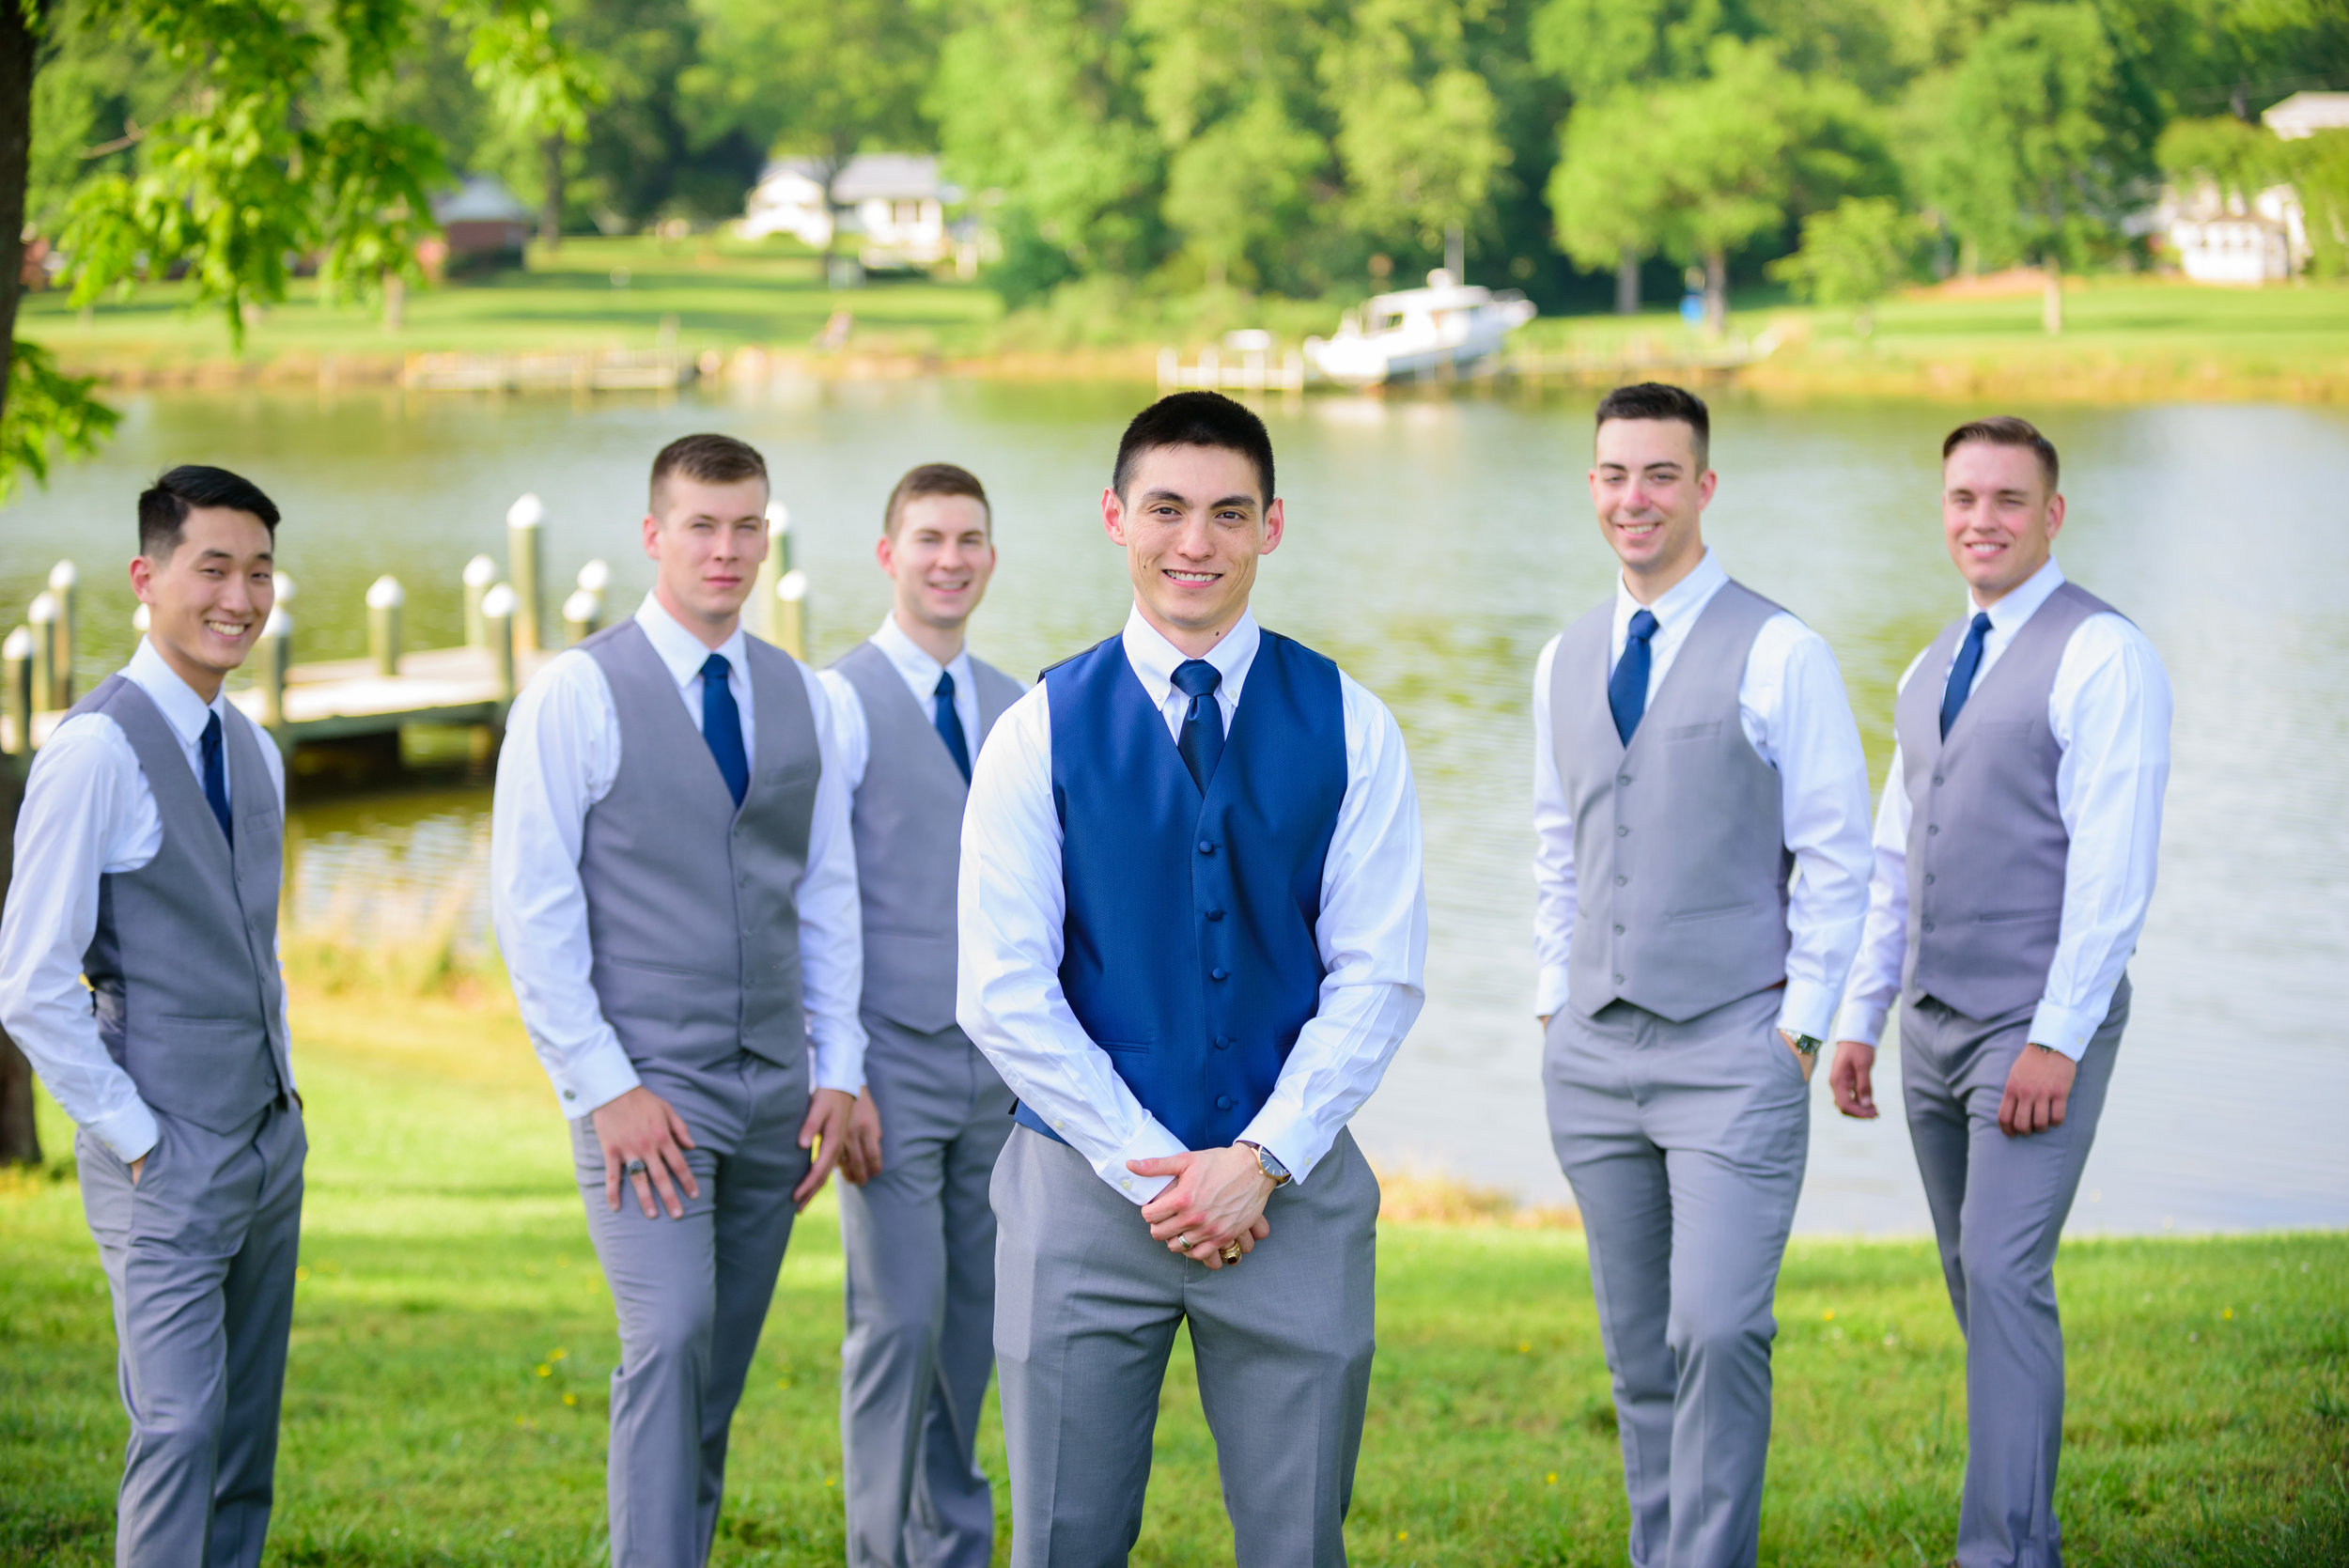 Groom and his groomsmen at Mary's Hope on Church Cove wedding